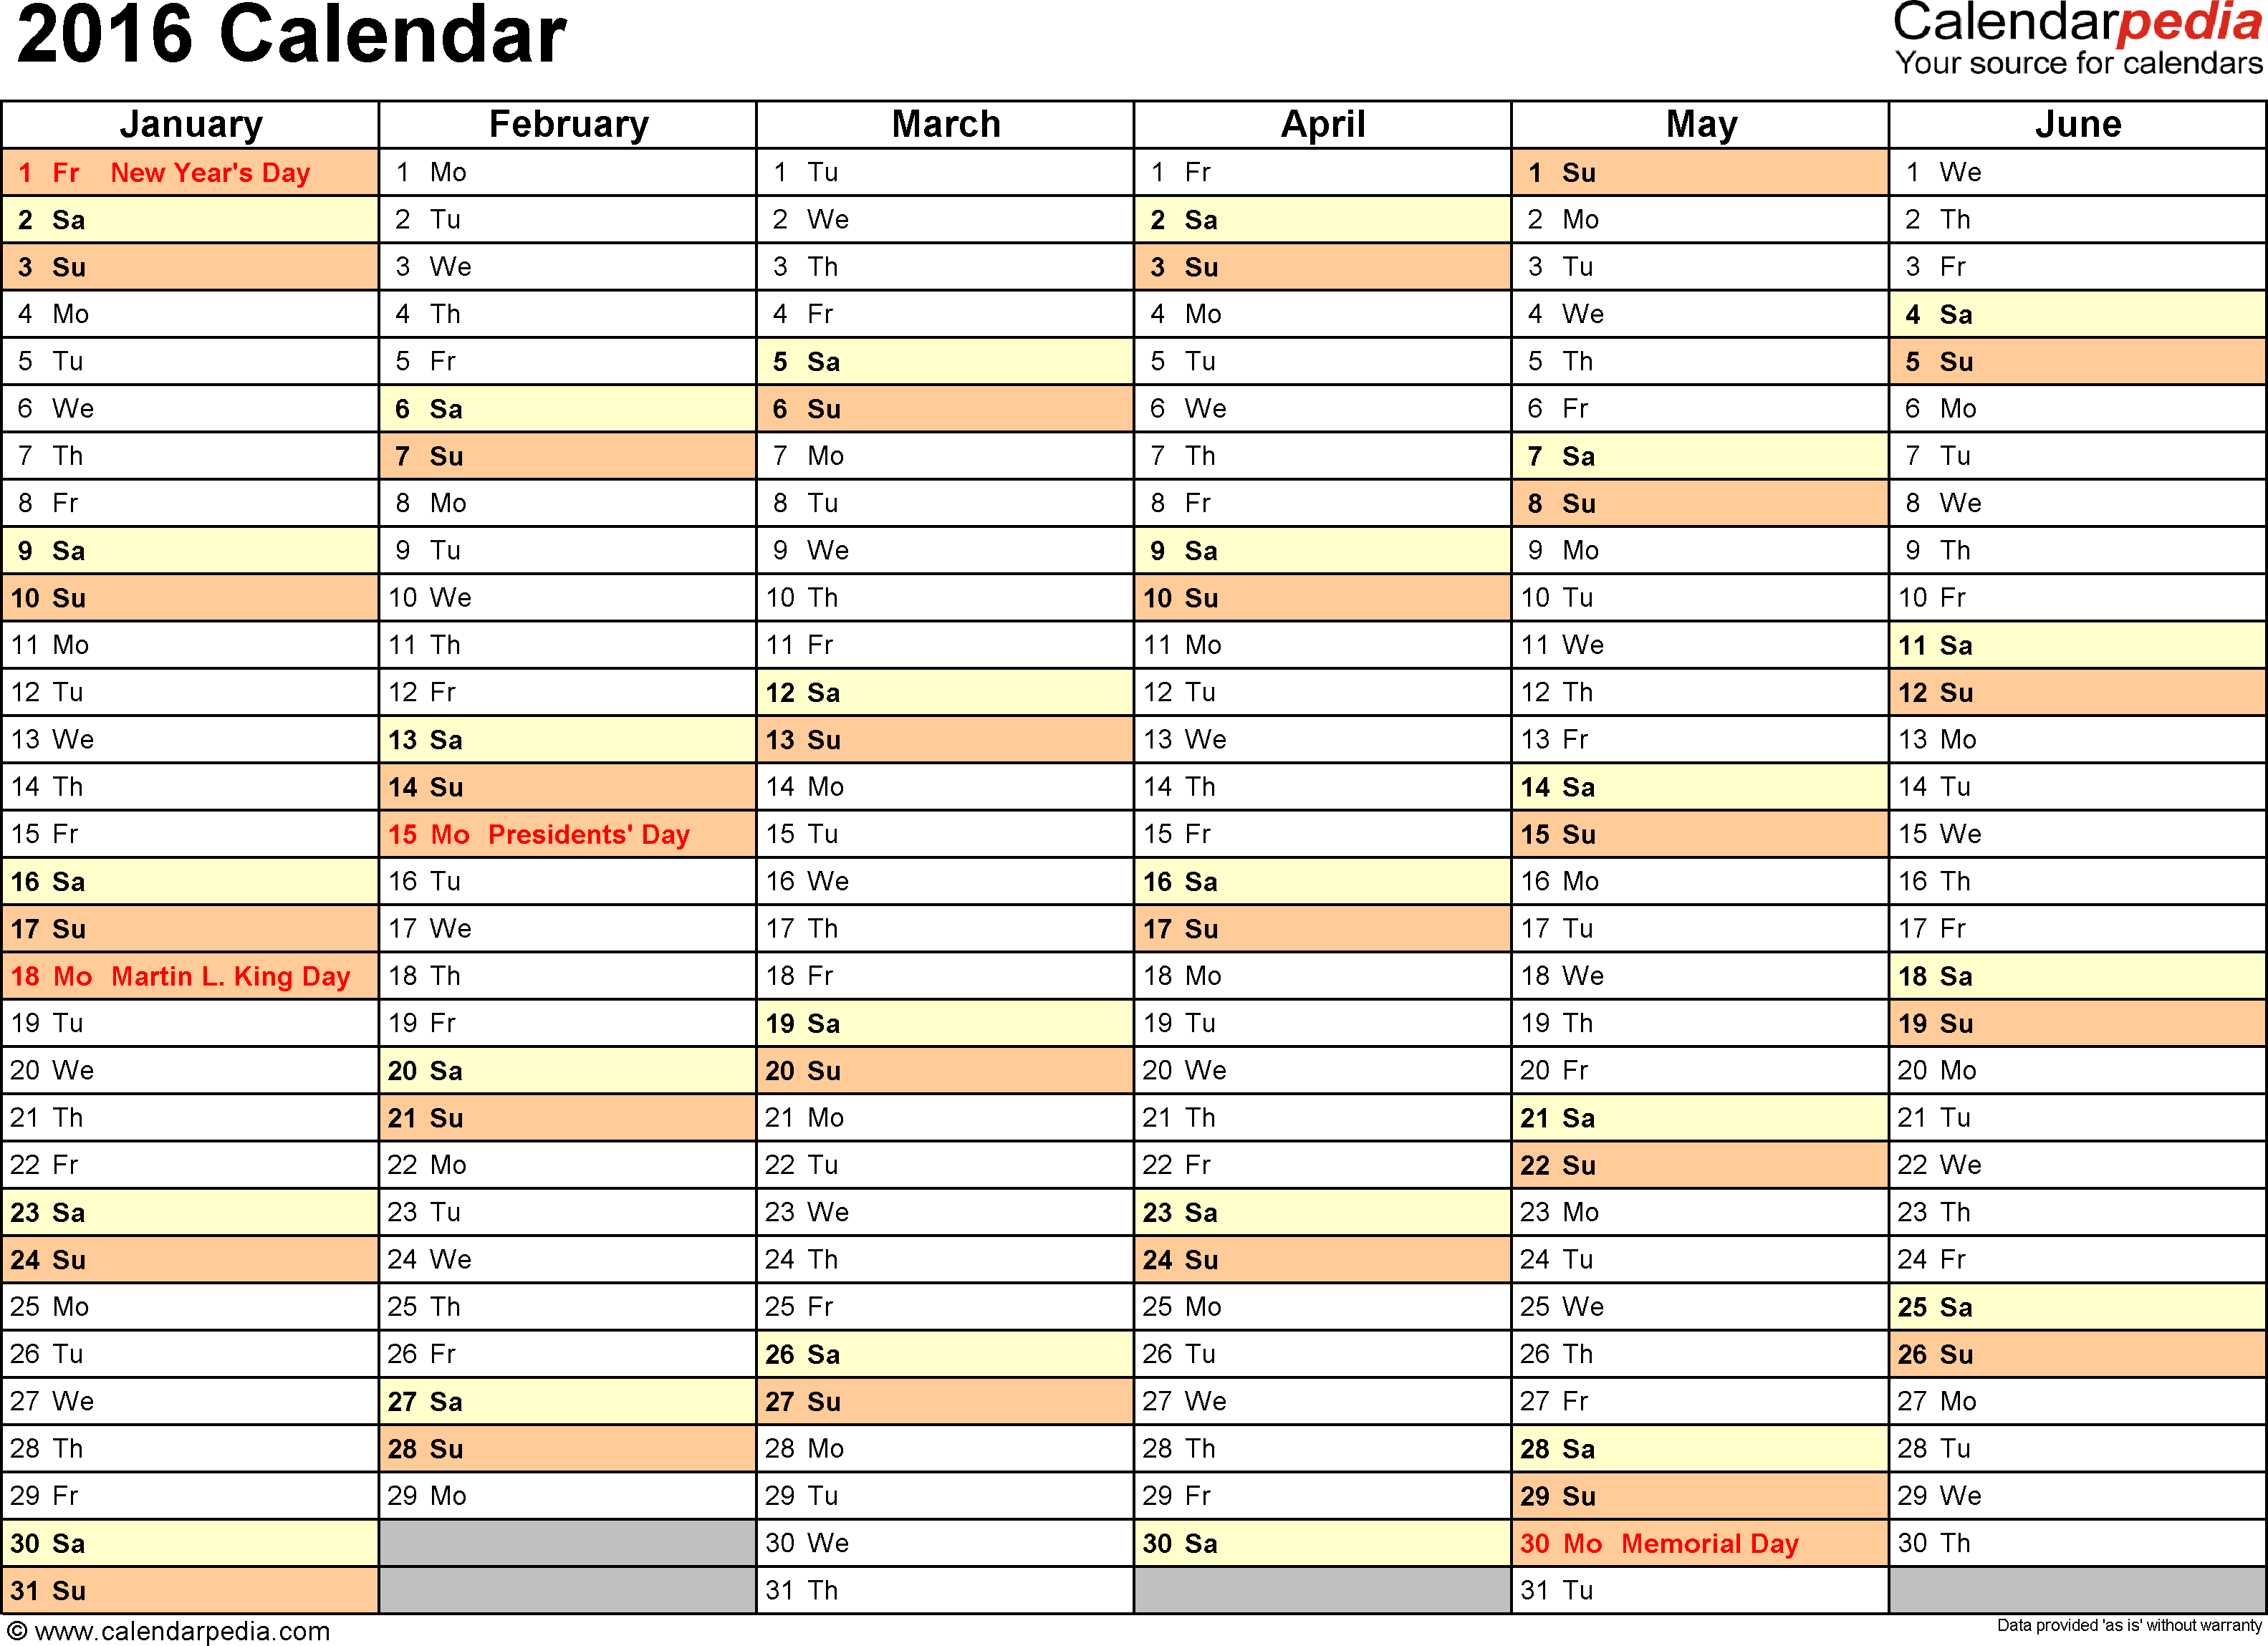 Ediblewildsus  Prepossessing  Calendar  Download  Free Printable Excel Templates Xls With Extraordinary Template   Calendar For Excel Months Horizontally  Pages Landscape Orientation With Enchanting Graphing An Equation In Excel Also Formula For Excel To Add In Addition How To Make A Budget Spreadsheet In Excel And Excel Mud Boats As Well As Excel Academy Arvada Co Additionally Excel Duplicates Remove From Calendarpediacom With Ediblewildsus  Extraordinary  Calendar  Download  Free Printable Excel Templates Xls With Enchanting Template   Calendar For Excel Months Horizontally  Pages Landscape Orientation And Prepossessing Graphing An Equation In Excel Also Formula For Excel To Add In Addition How To Make A Budget Spreadsheet In Excel From Calendarpediacom